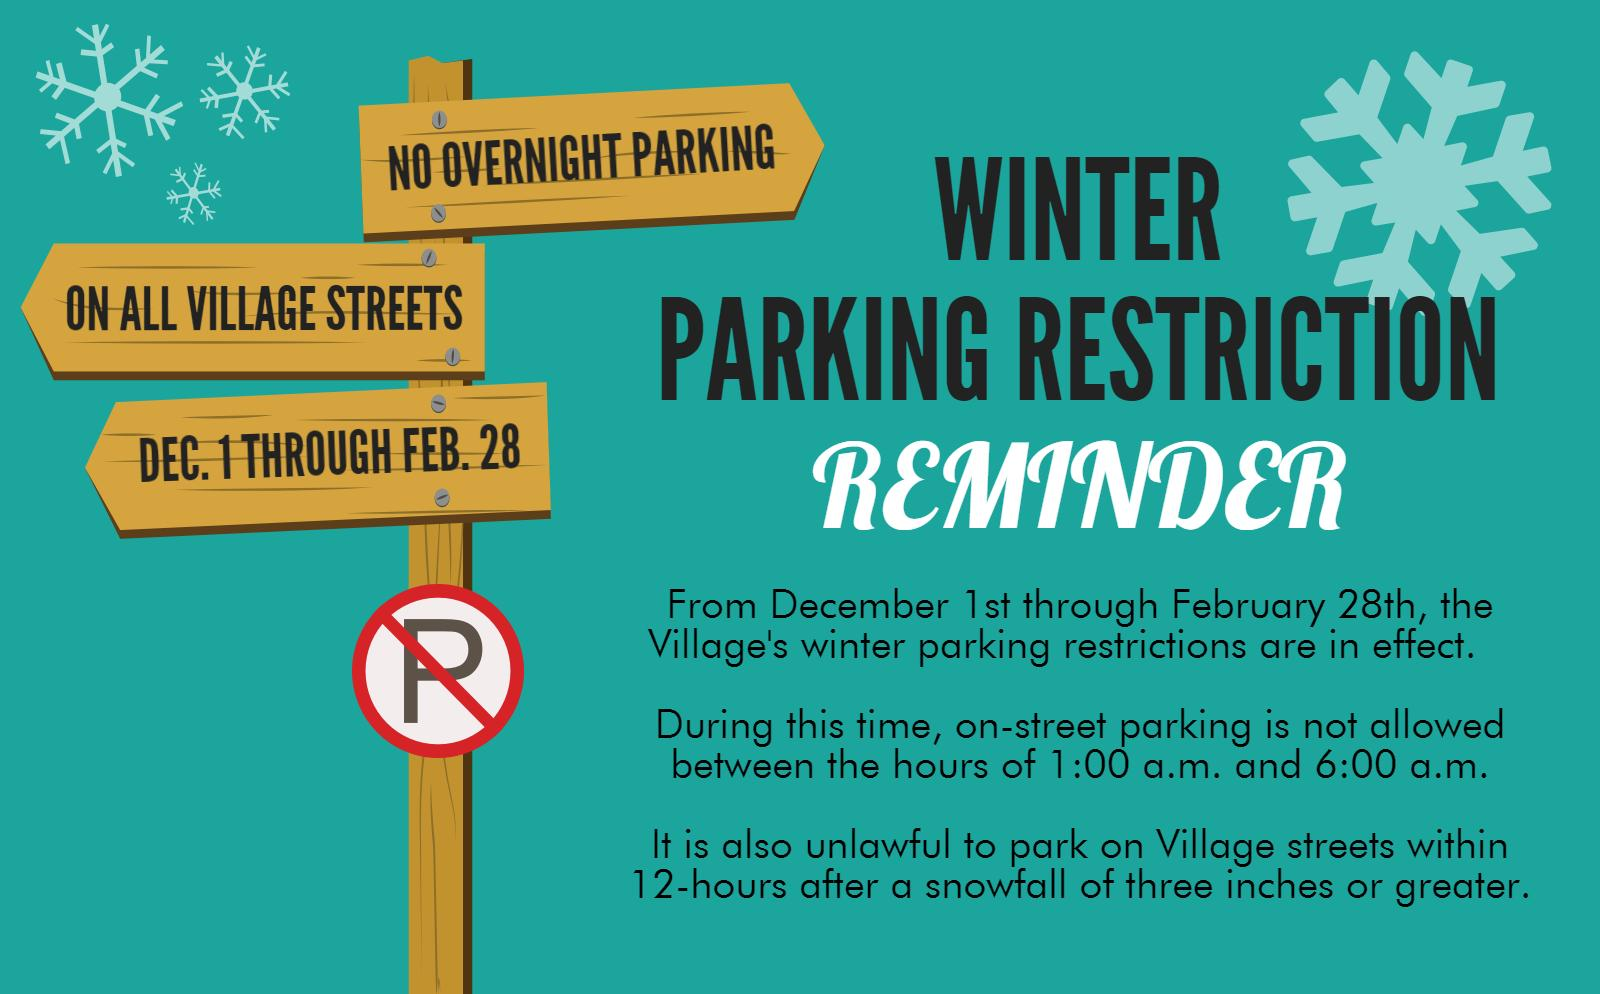 WINTER PARKING RESTRICTIONS